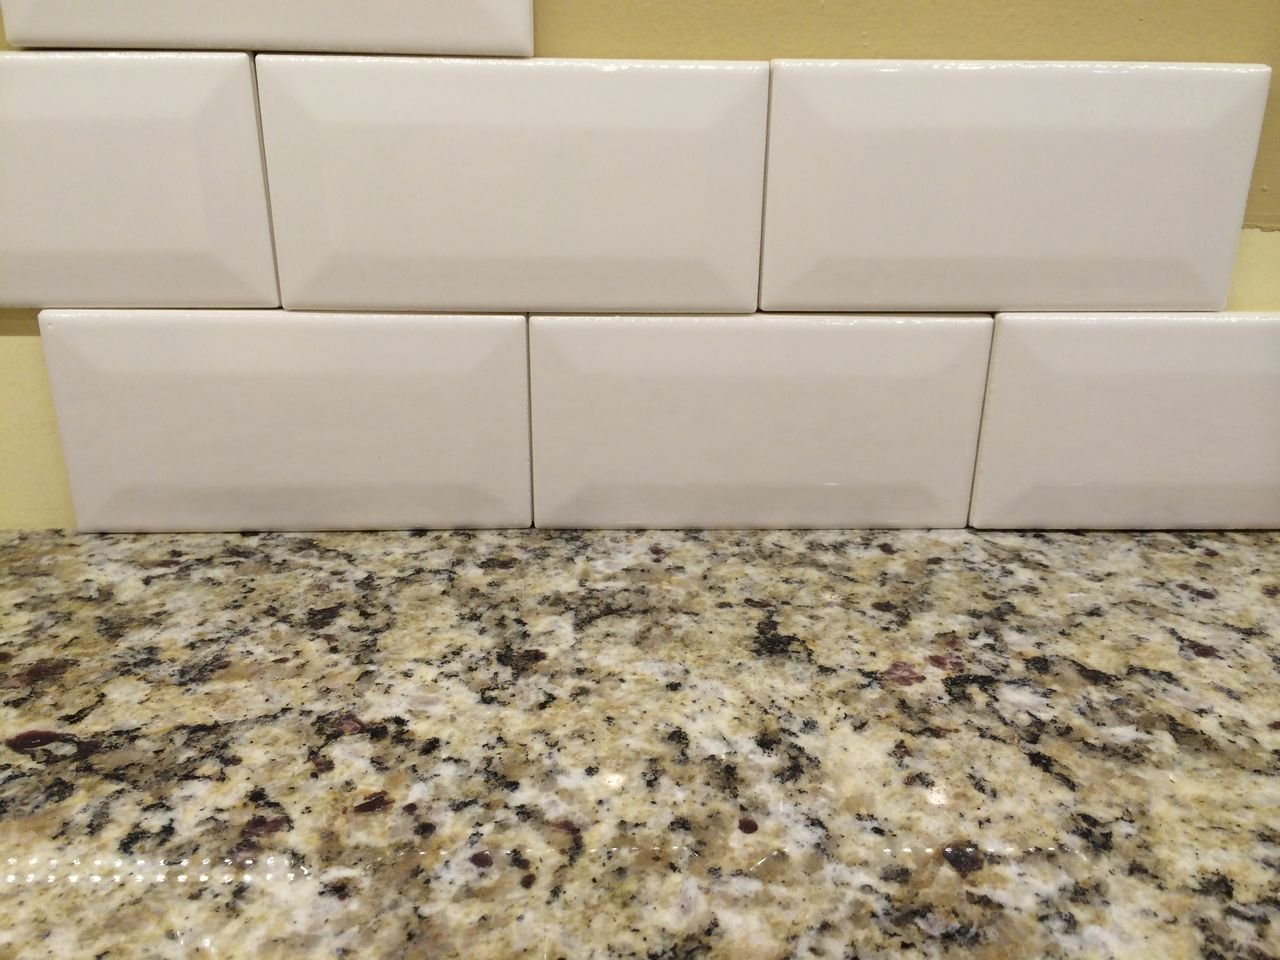 Pretty 1 Inch Ceramic Tiles Tiny 12 By 12 Ceiling Tiles Shaped 12X12 Cork Floor Tiles 3X6 Glass Subway Tile Old 3X6 White Glass Subway Tile Pink3X6 White Subway Tile Lowes Image Result For Off White Beveled Subway Tile | Curtis Residence ..